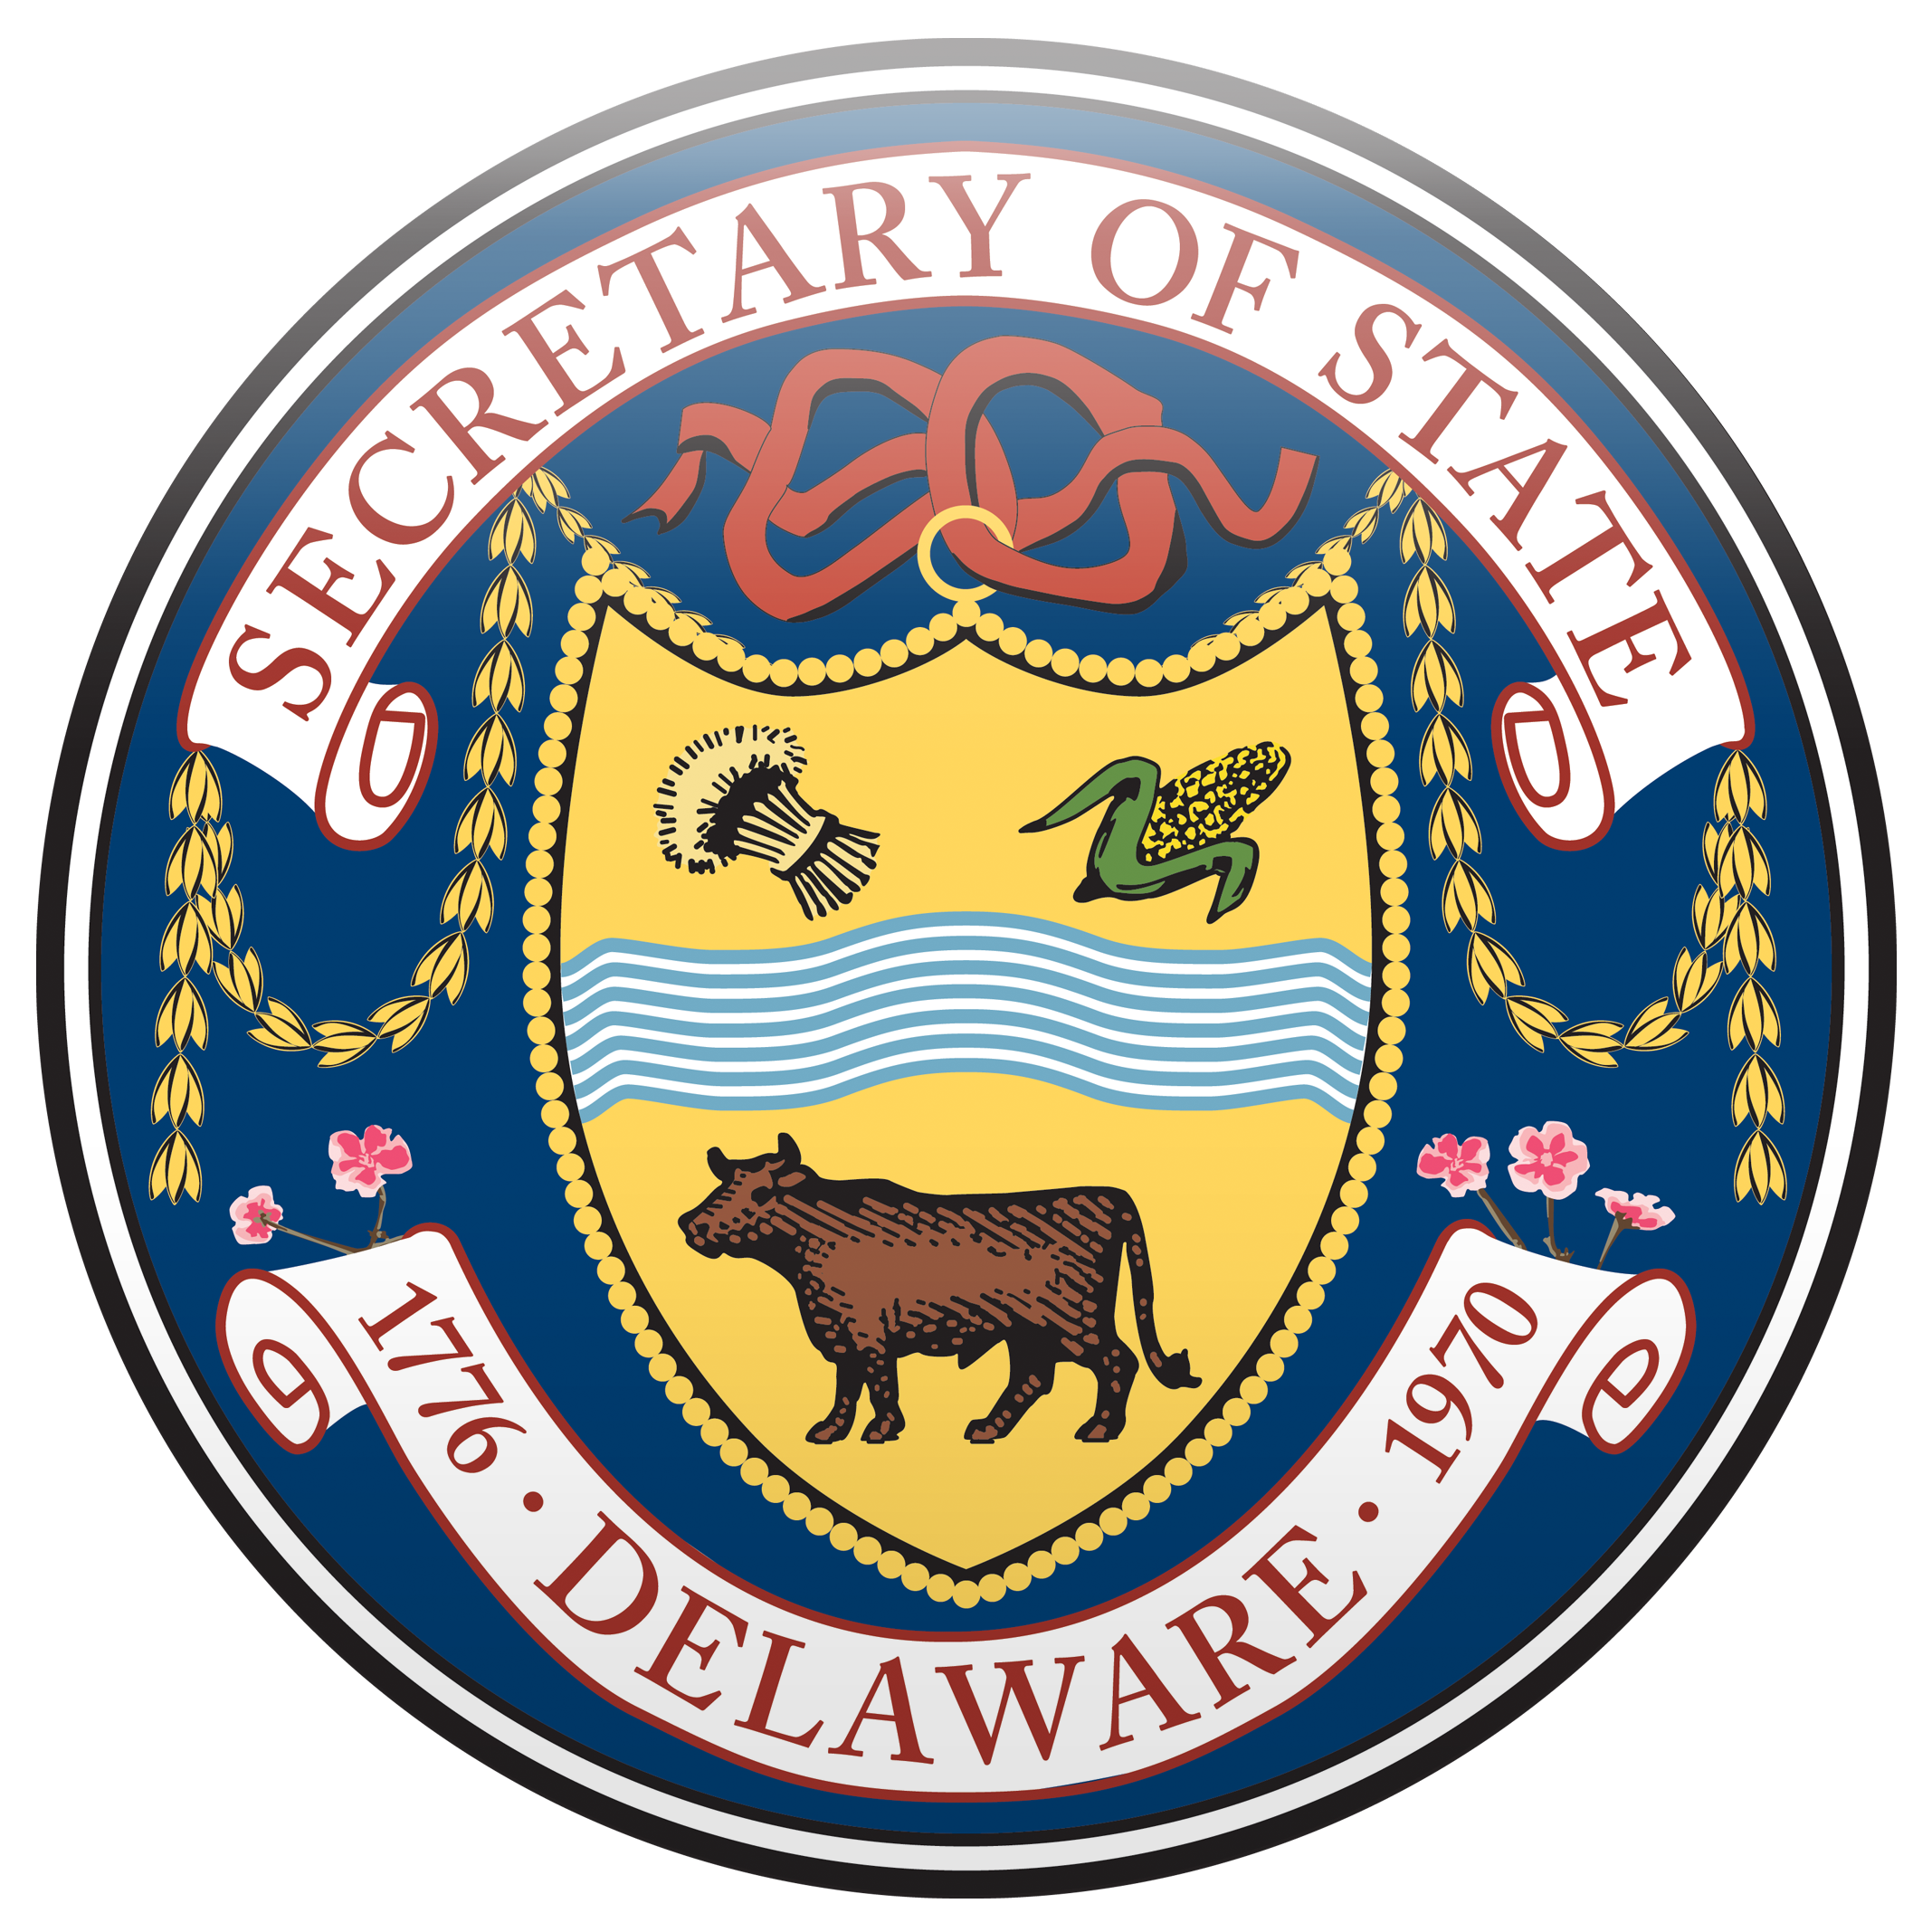 Department of state seal png. Emblems request form delaware